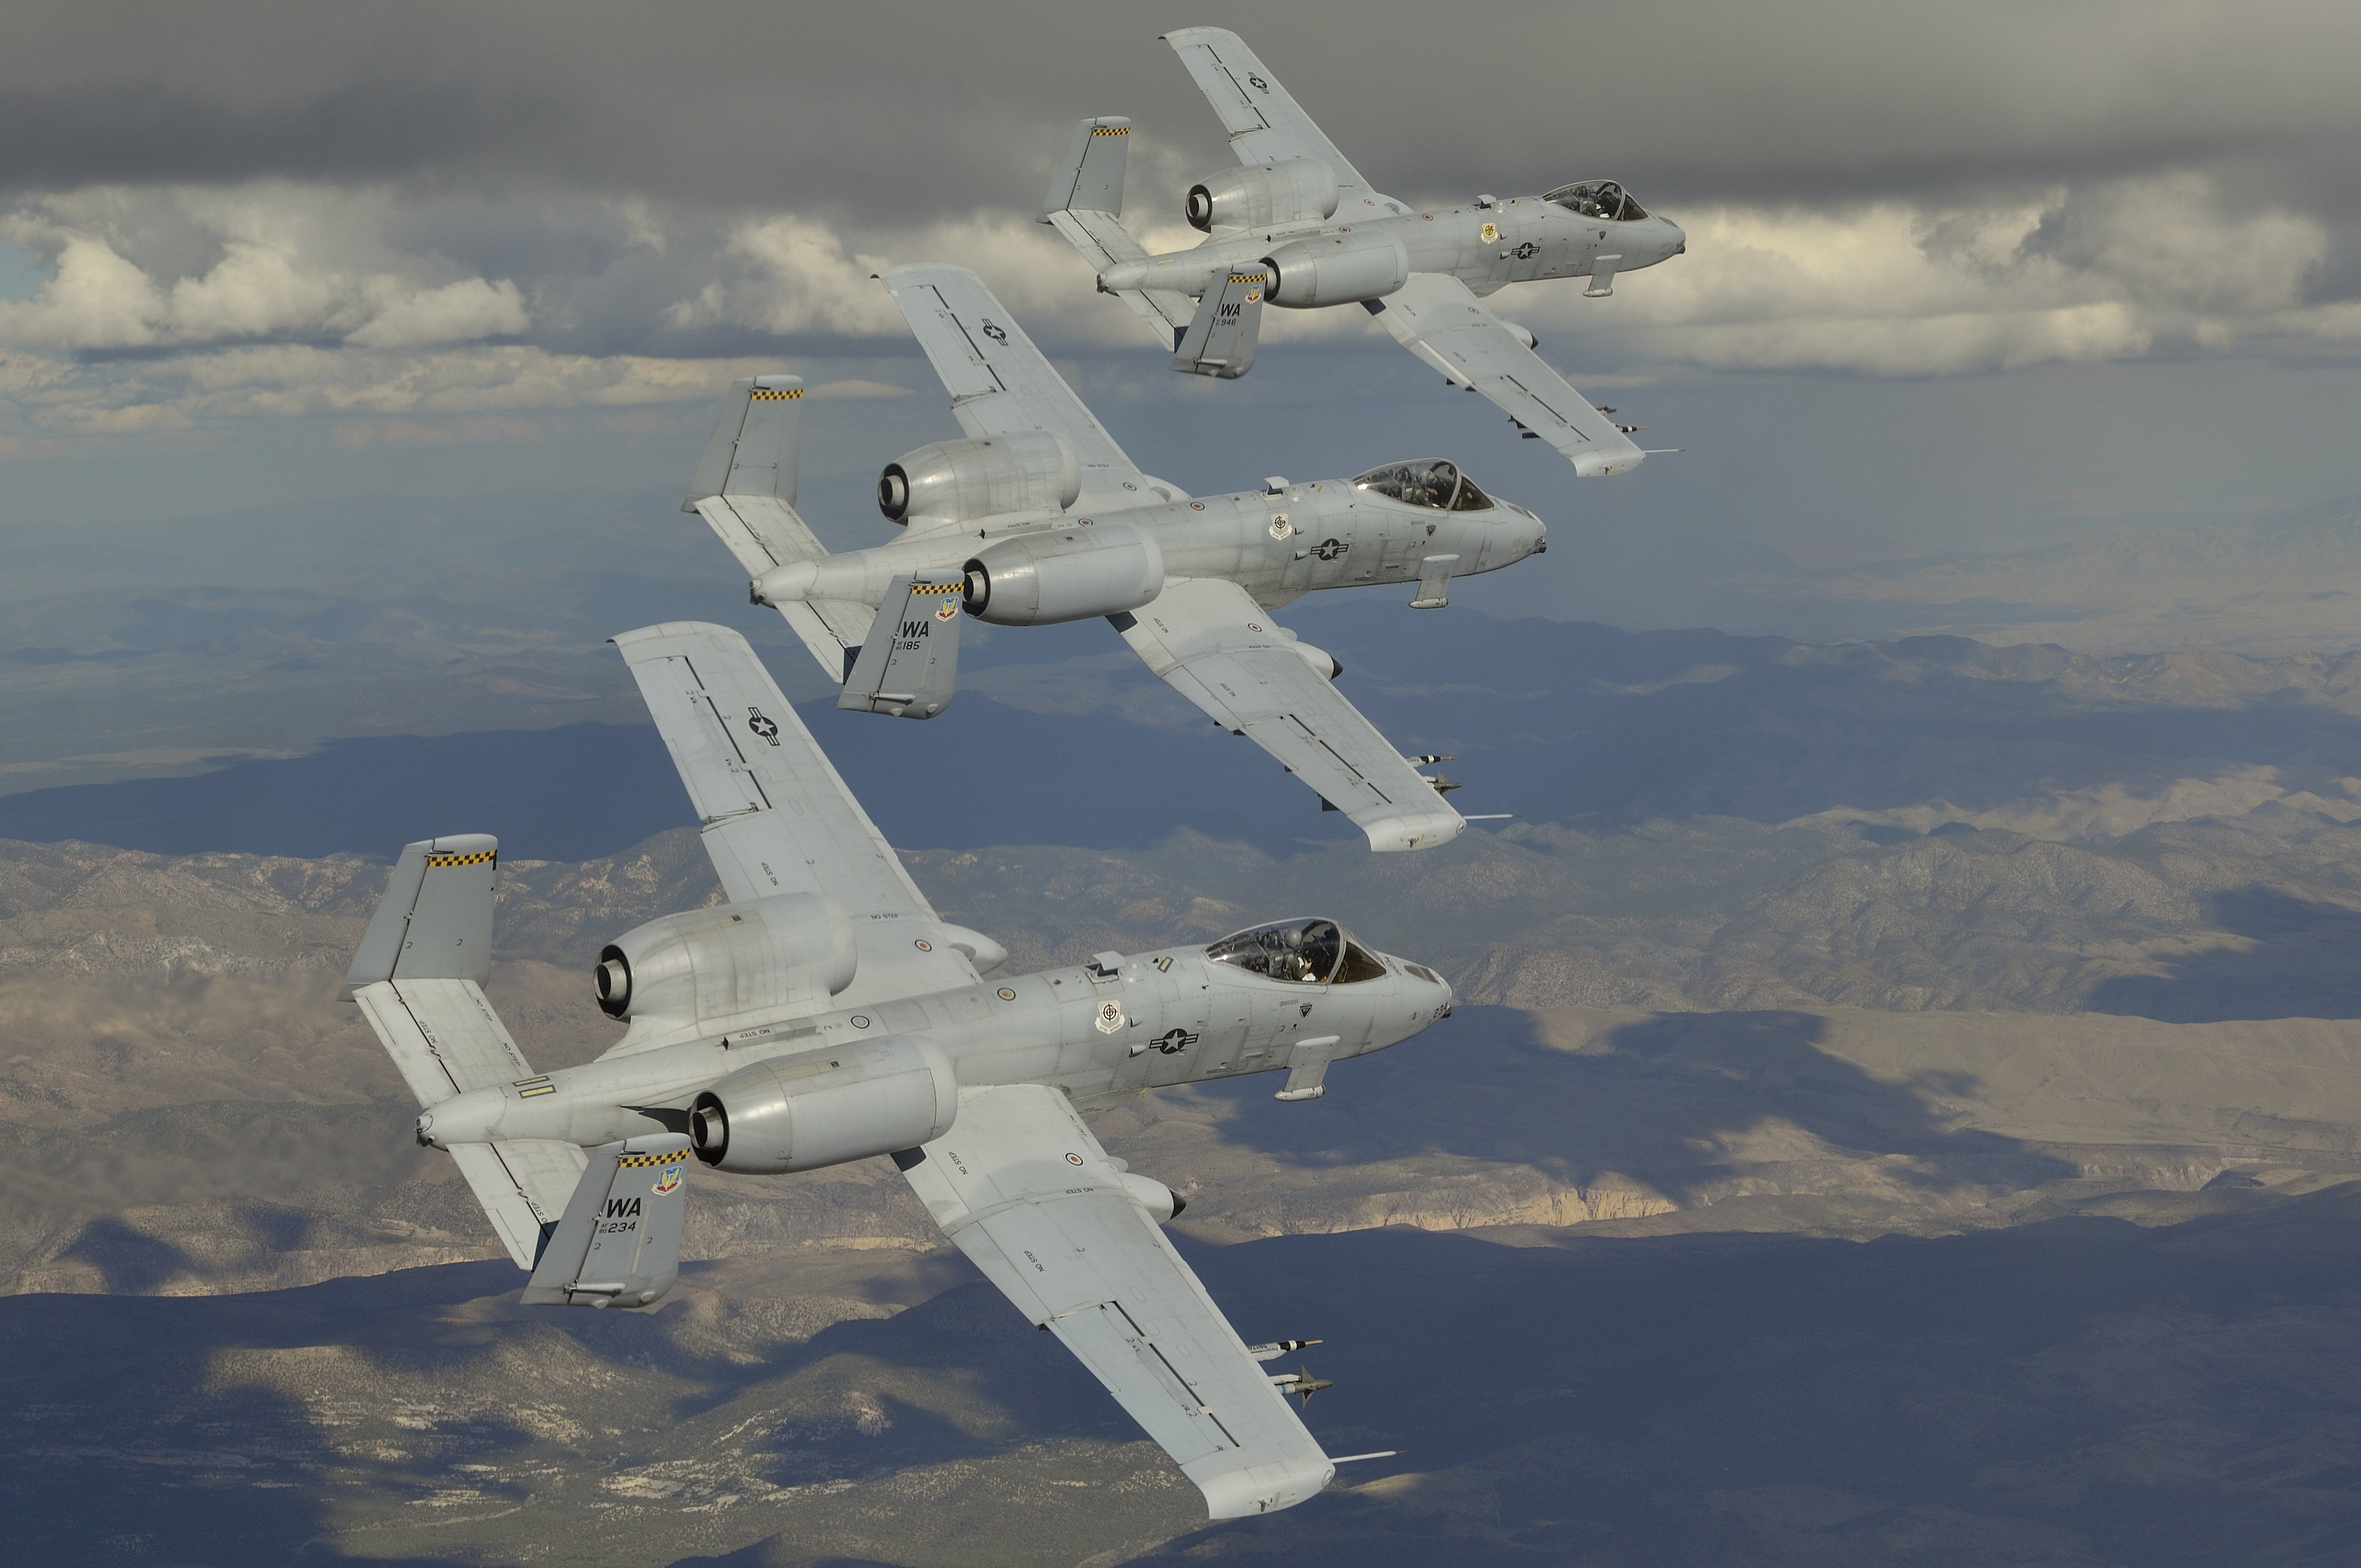 GEW4787 - Op-Ed: The A-10 Warthog is still the Air Force's favorite target